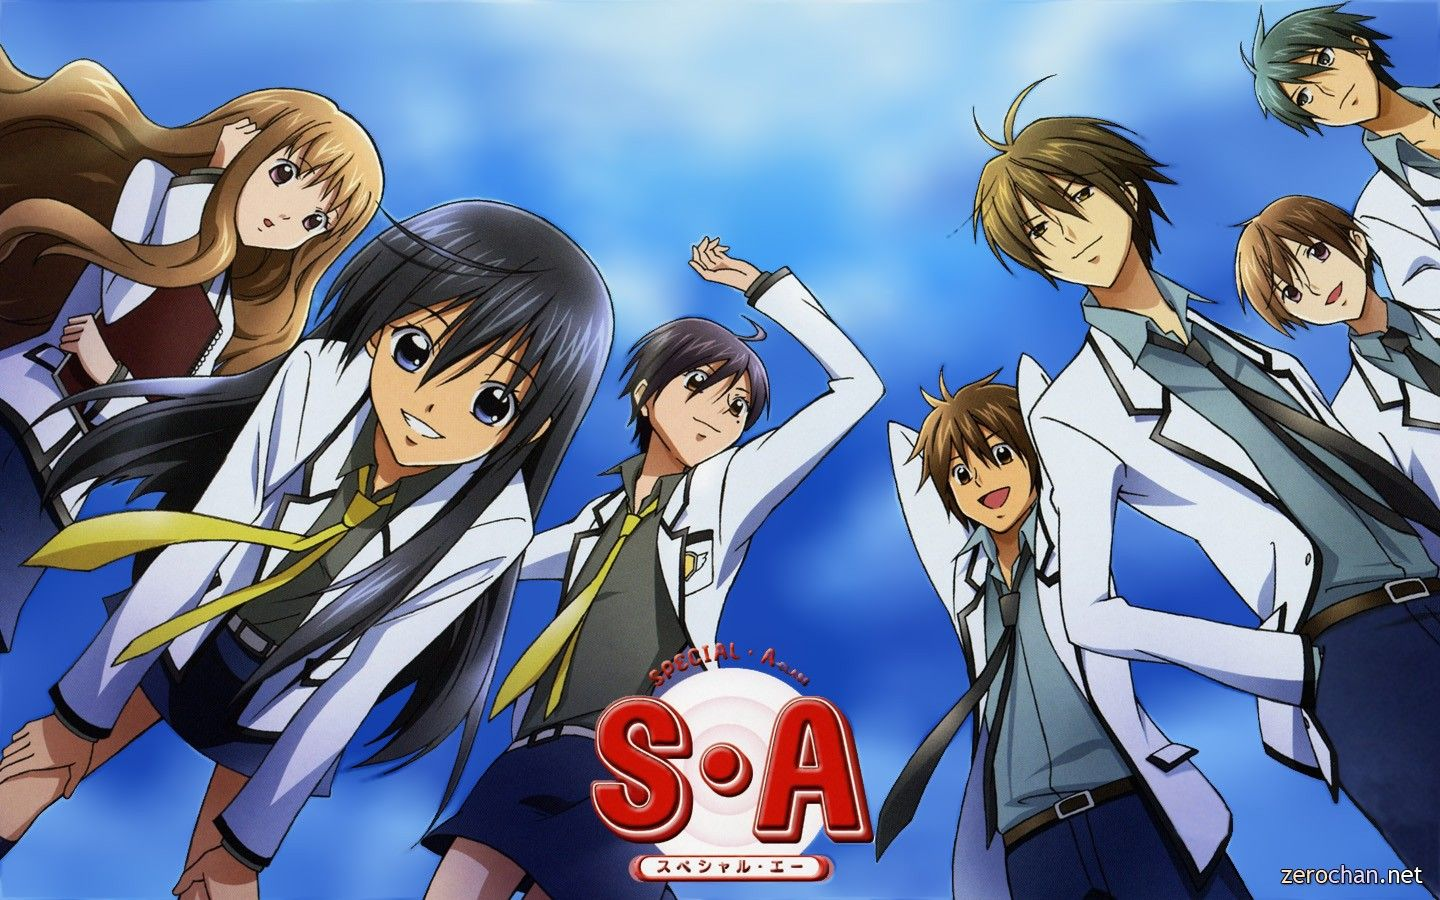 Batam, Indonesia Special a anime, Romantic comedy anime